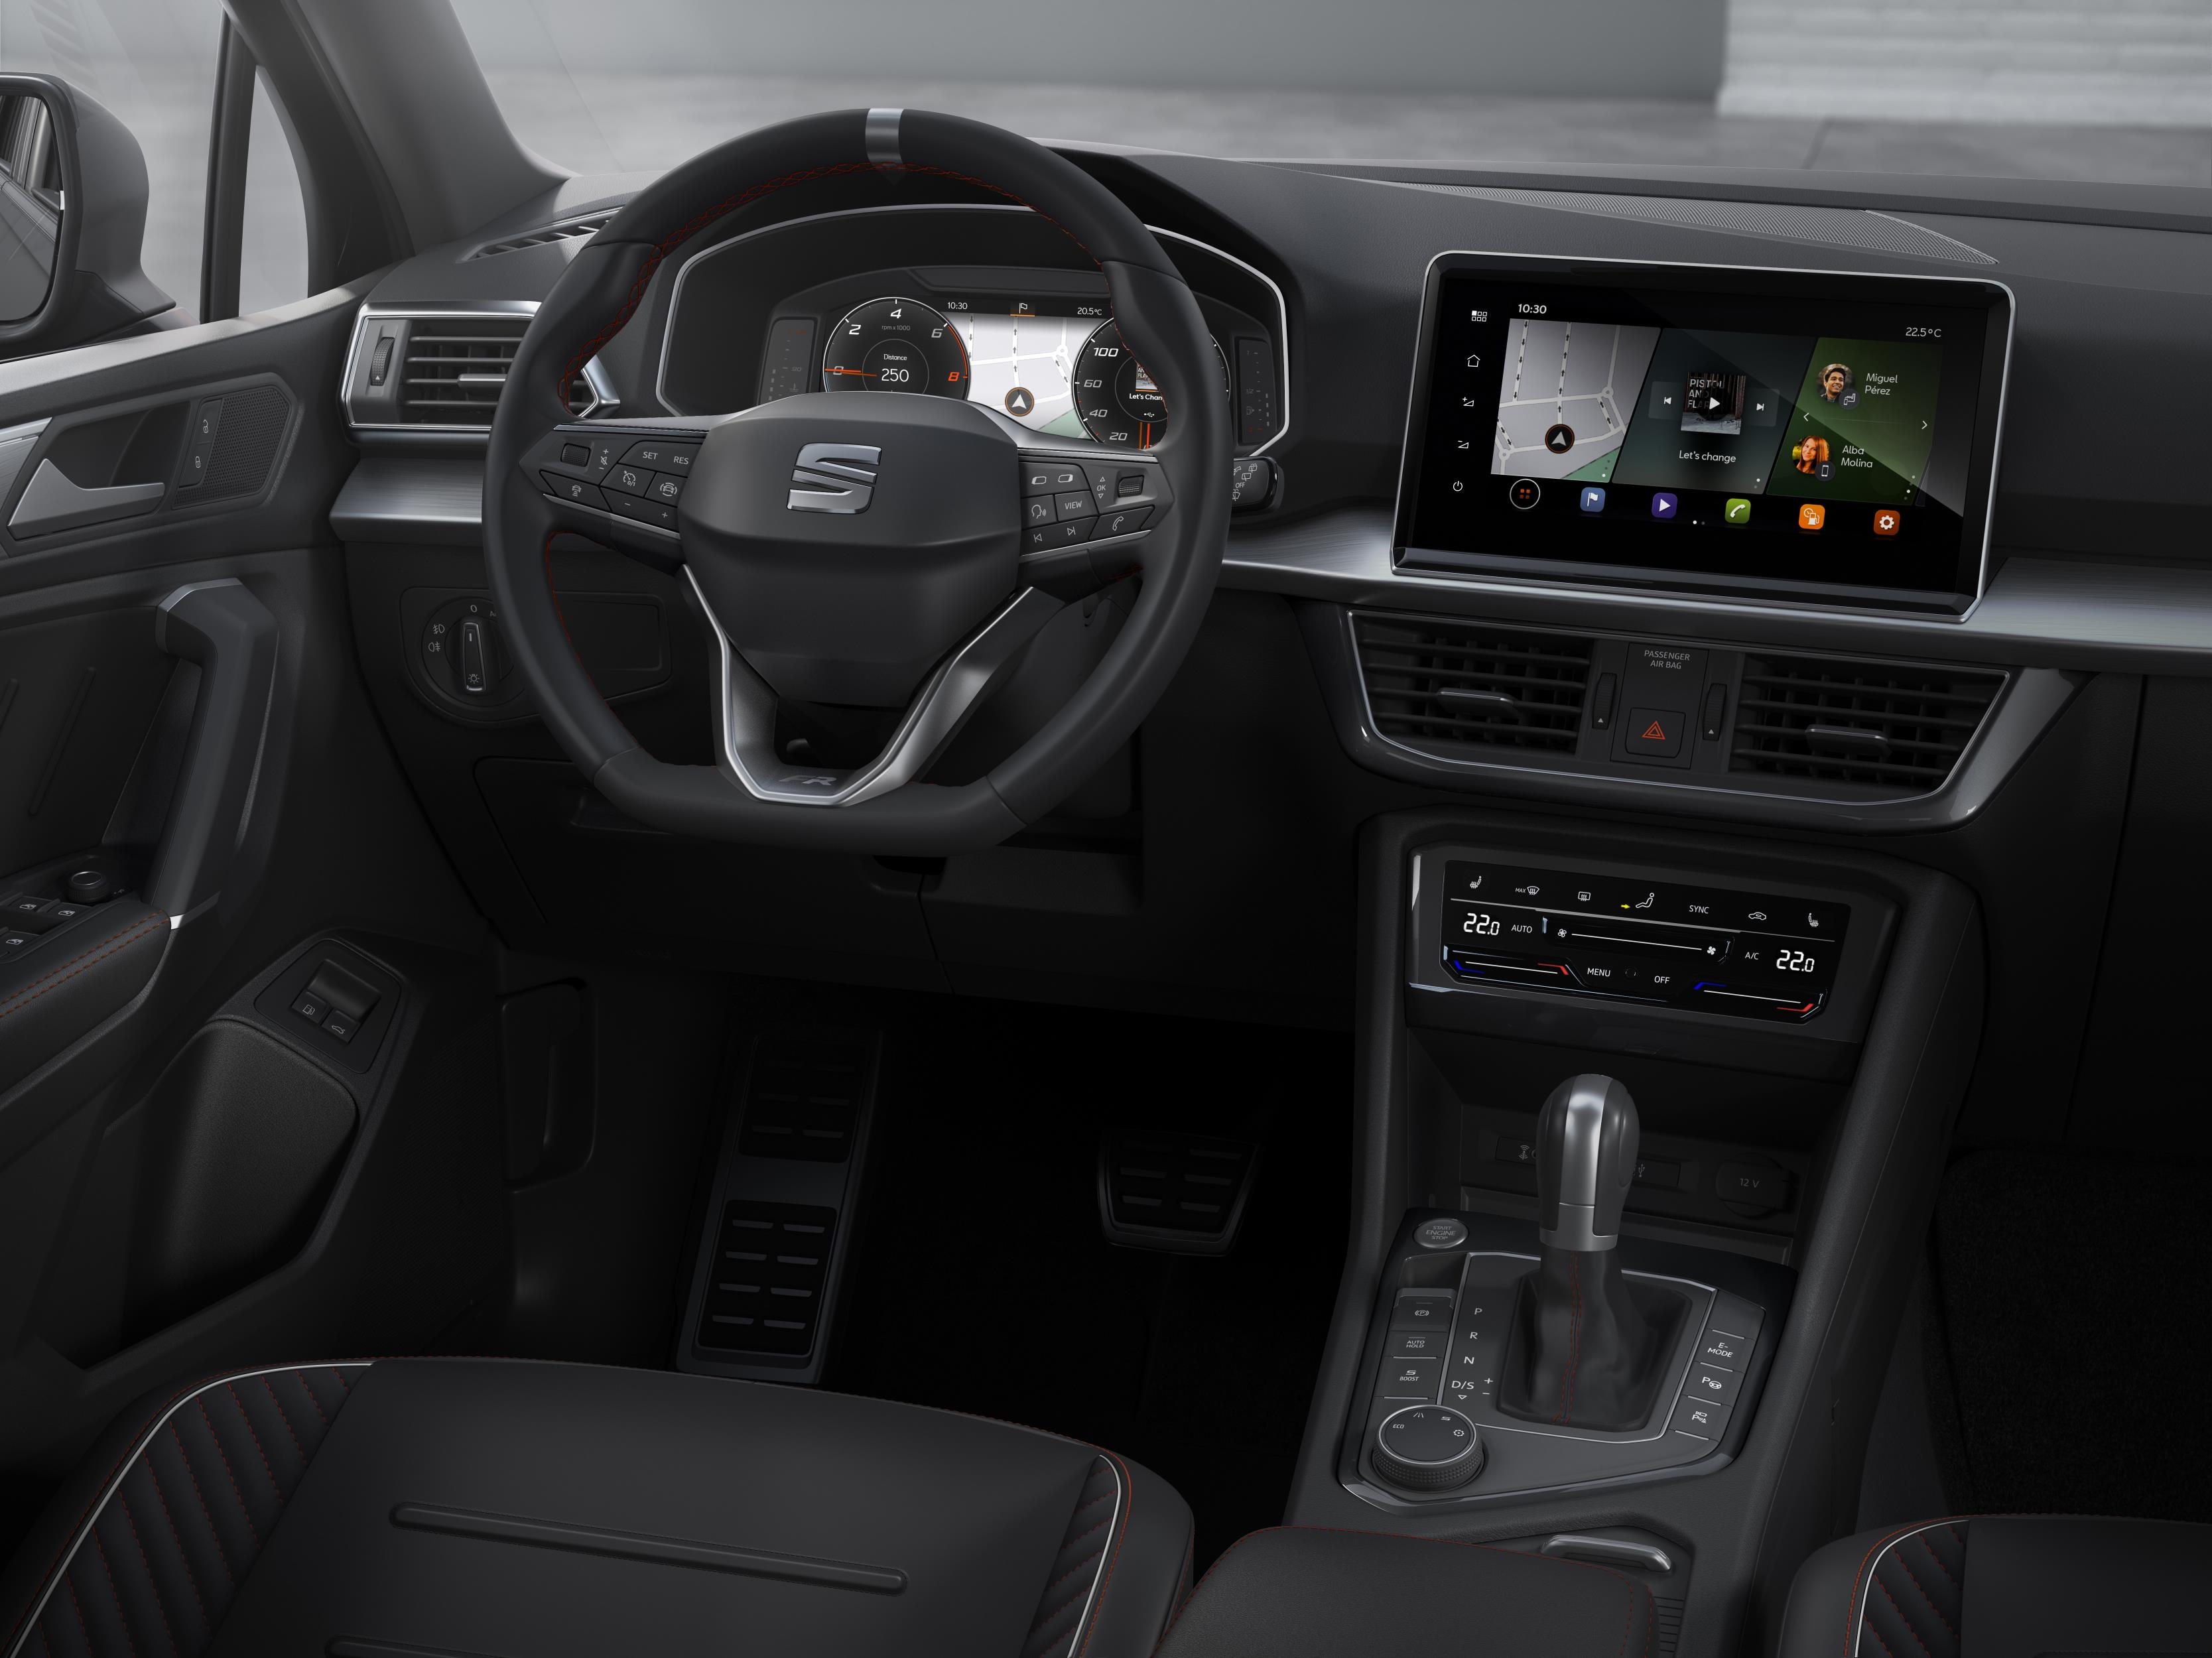 The interior remains largely the same as the regular Tarraco